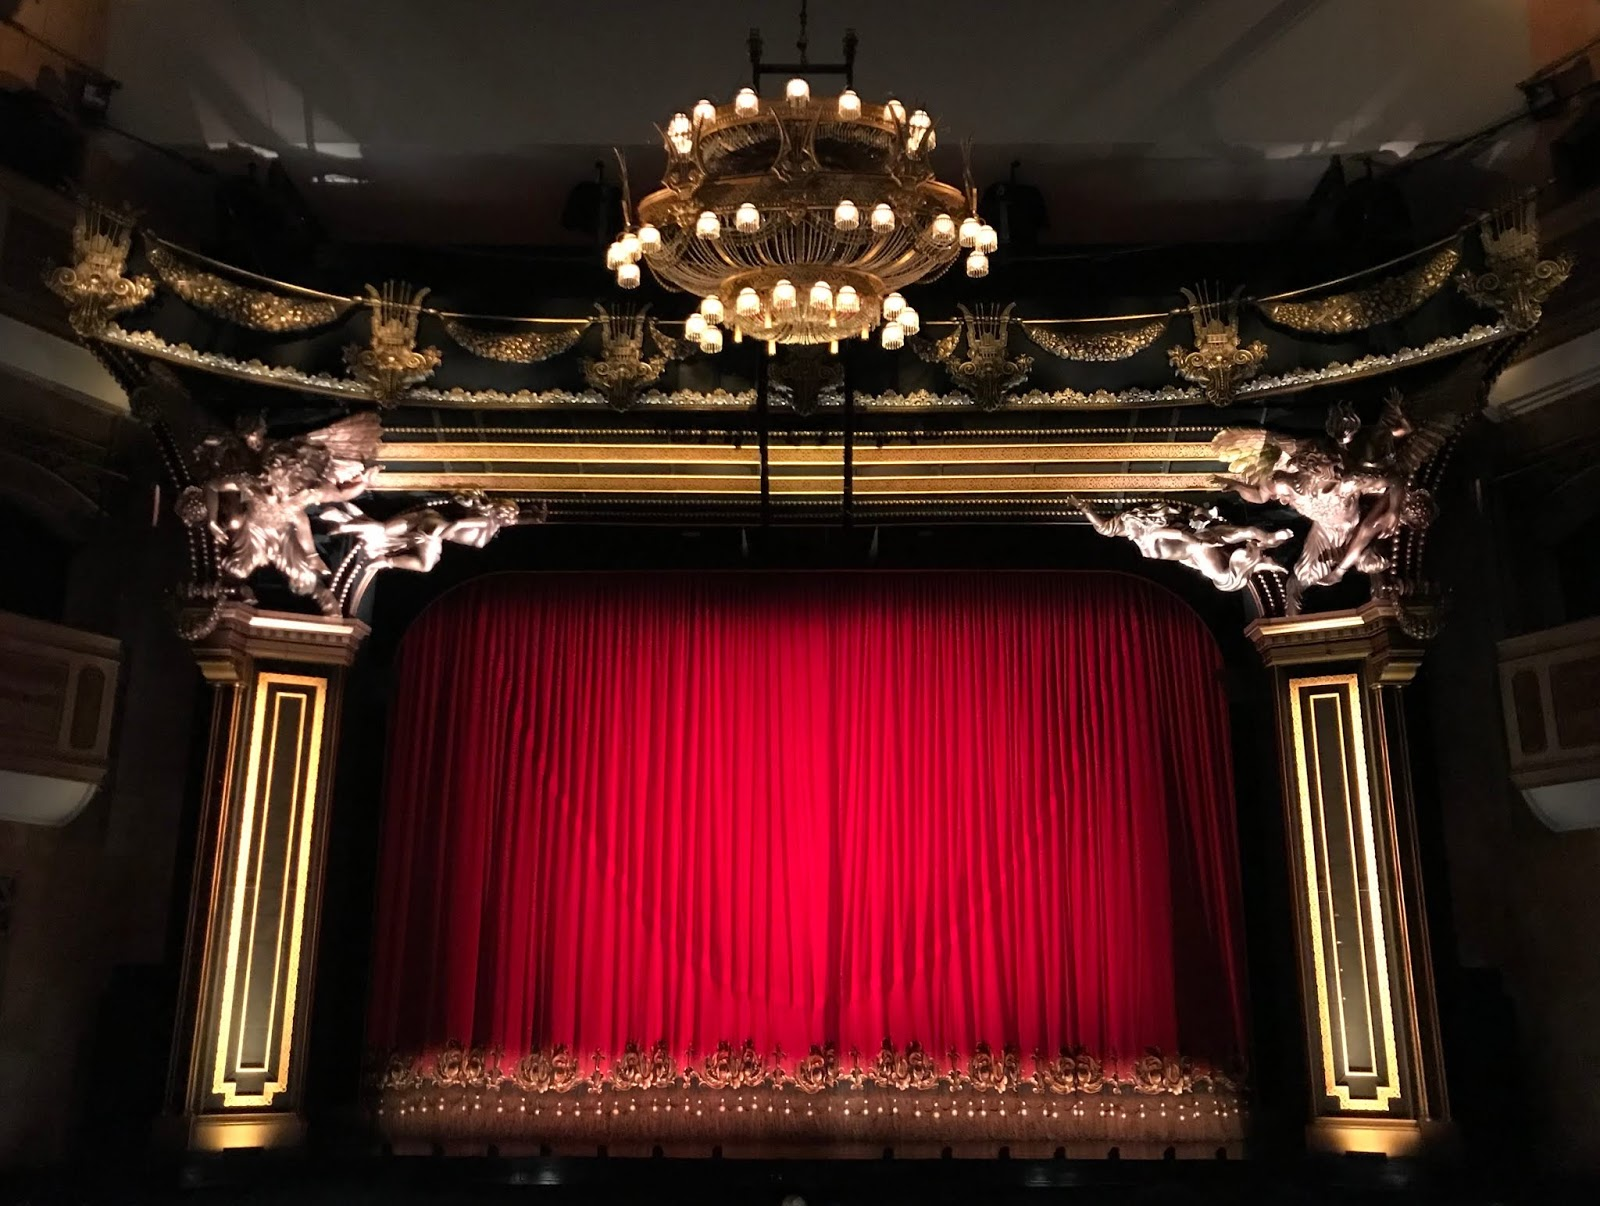 A photo of a theatre, with it's red curtains drawn, two squared coloumns either side with carved figures at the top, and a chandelier hanging from the ceiling at the top of the photo.